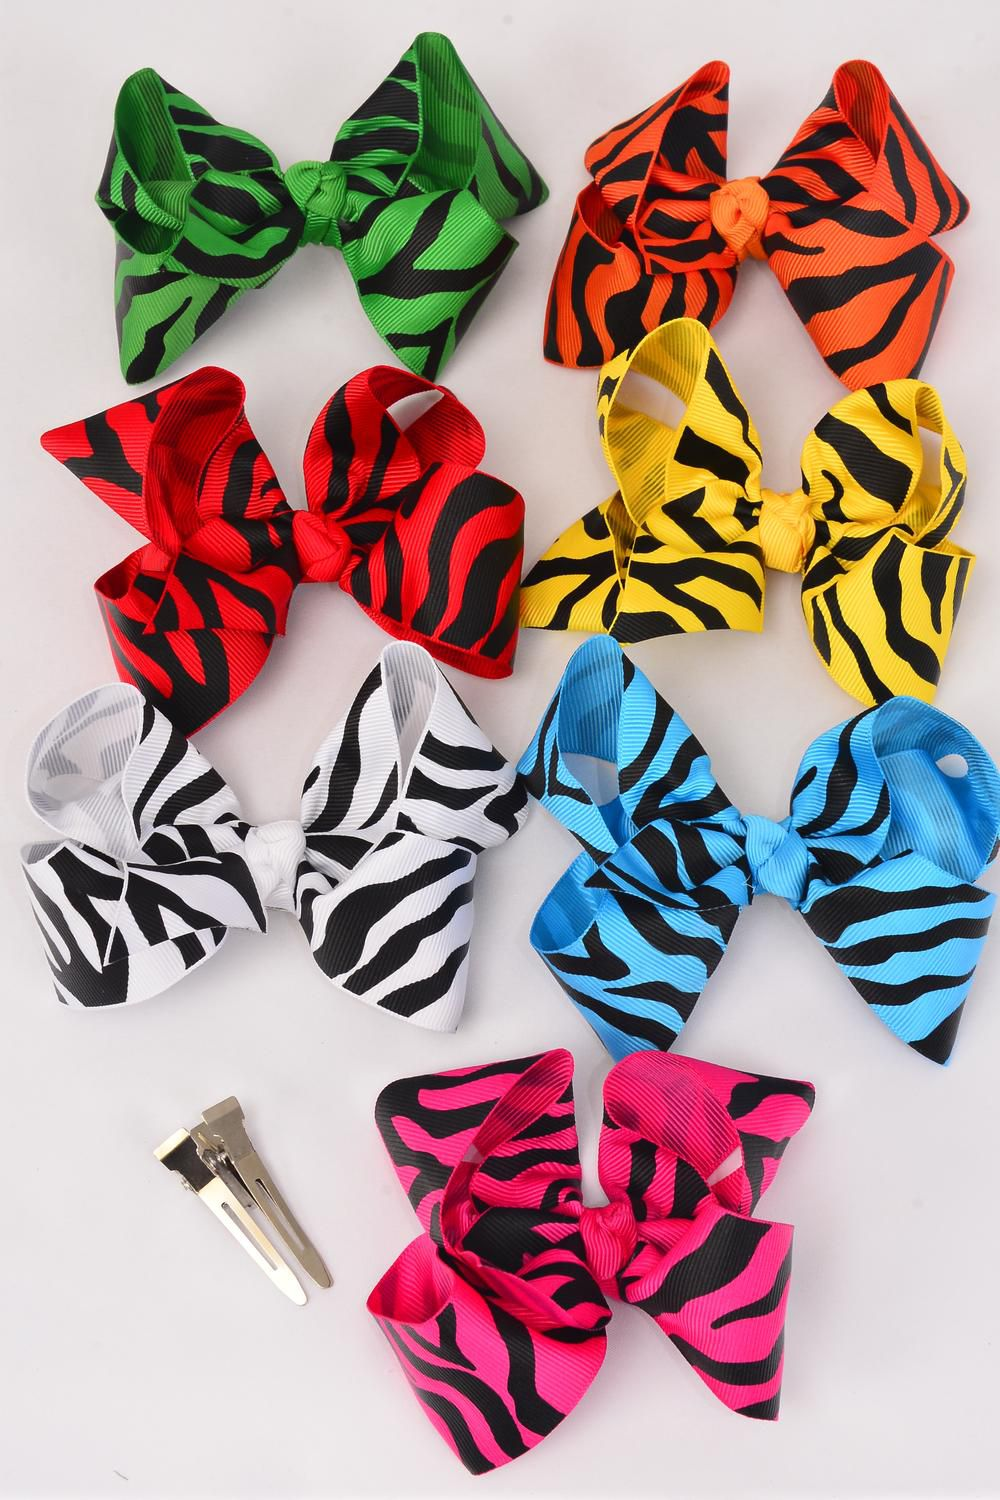 "Hair Bow Large Bow-tie Zebra Prints Grosgrain Fabric Alligator Clip/DZ **Alligator Clip** Bow Size-4.5""x 3.5"" Wide,2 Red,2 White,2 Fuchsia,2 Yellow,2 Blue,1 Green,1 Orange mix,Display Card & UPC Code, Clear Box"